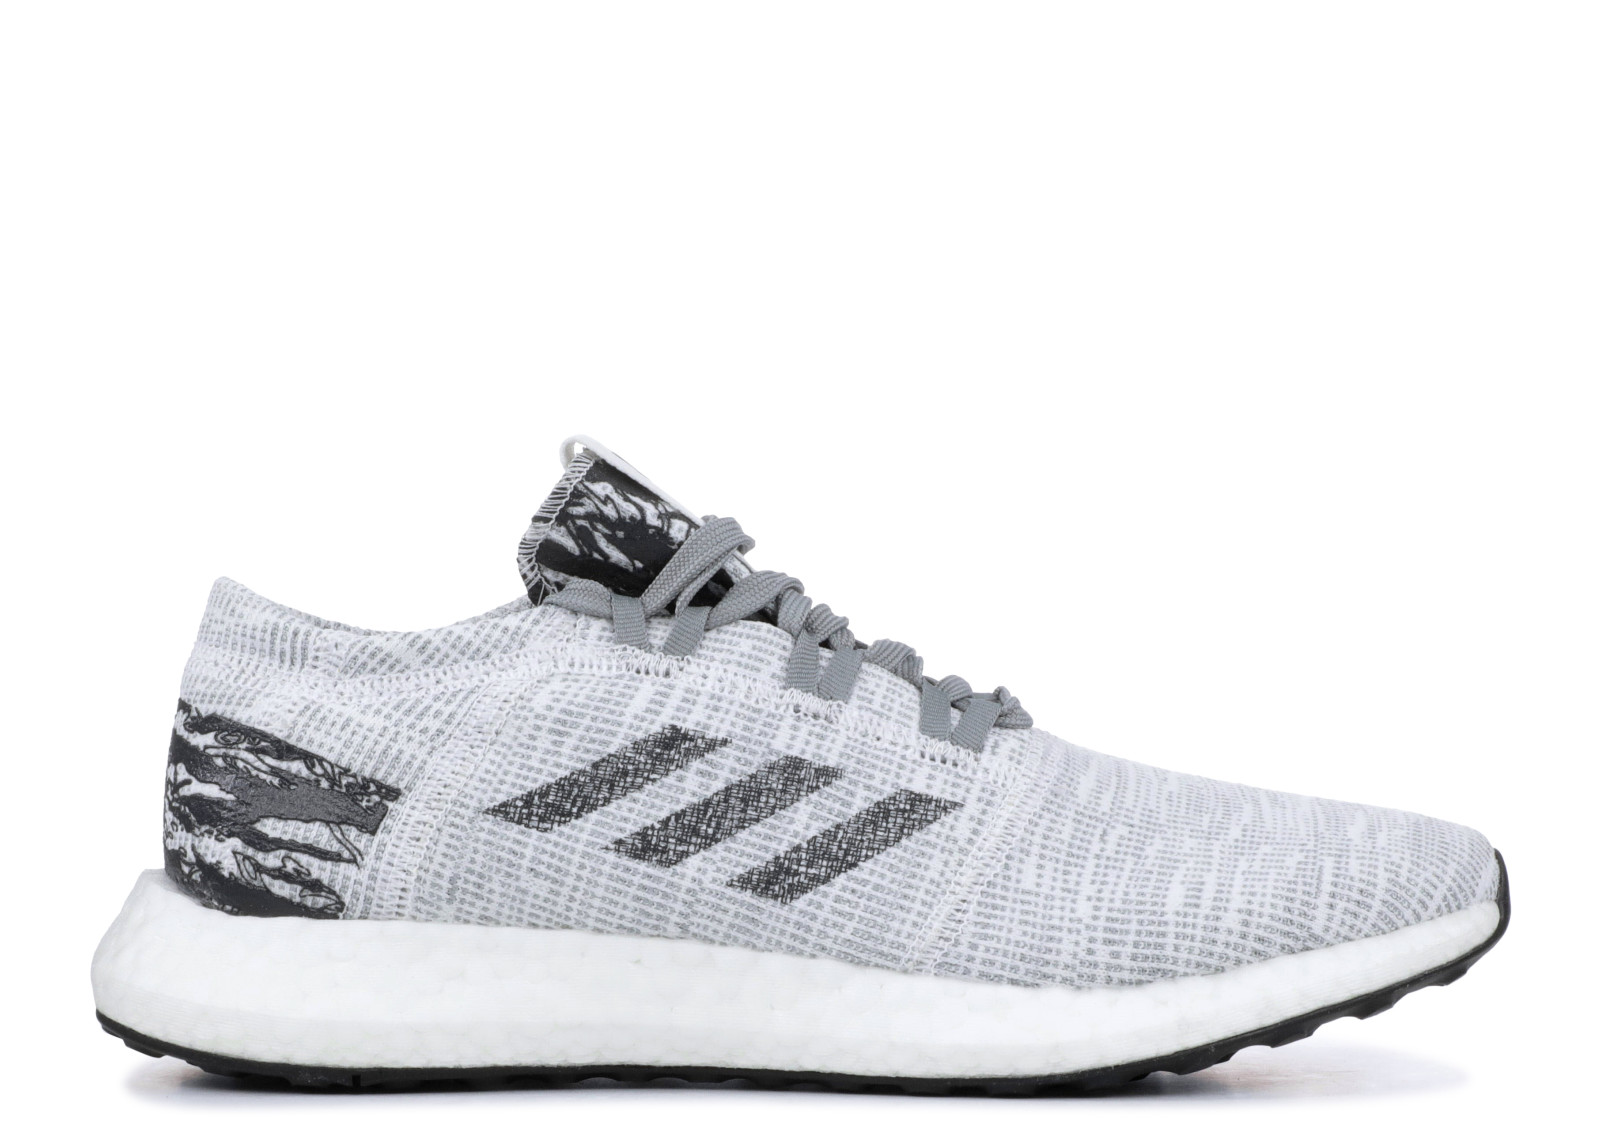 46a39da519427 adidas Pure Boost LTD Undefeated Performance Running - 0